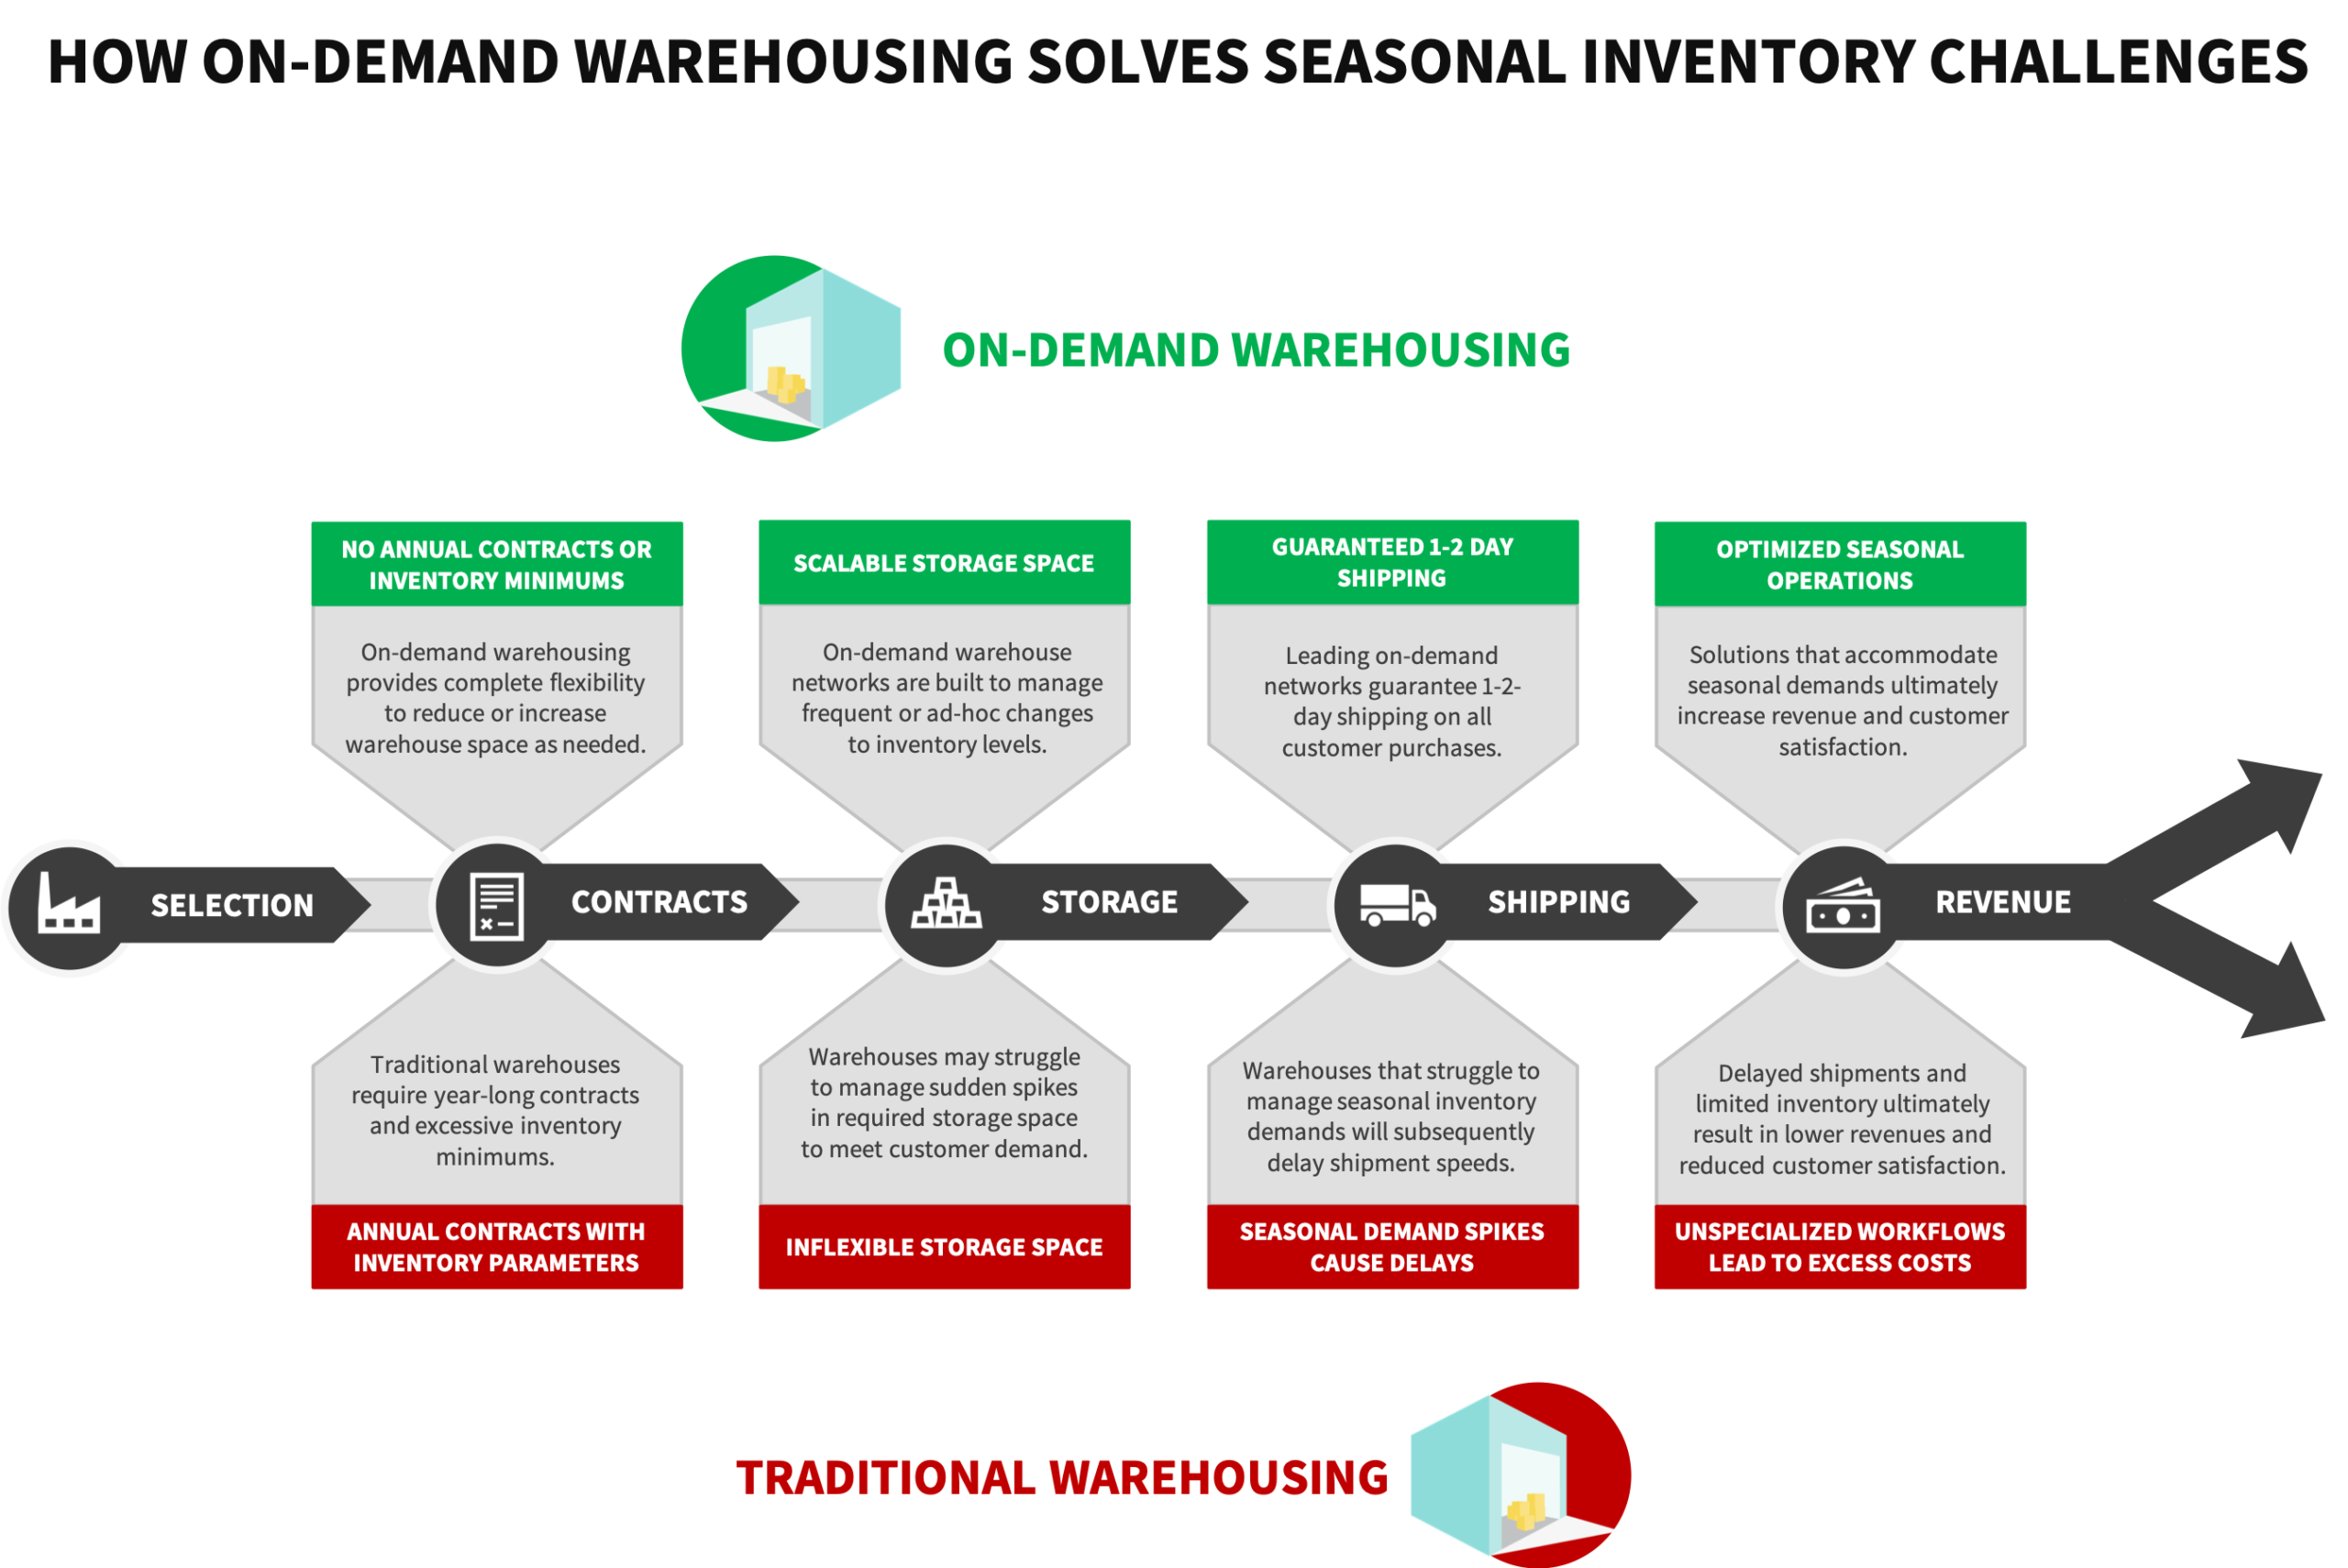 How on-demand warehousing compares to traditional warehousing for seasonal inventory